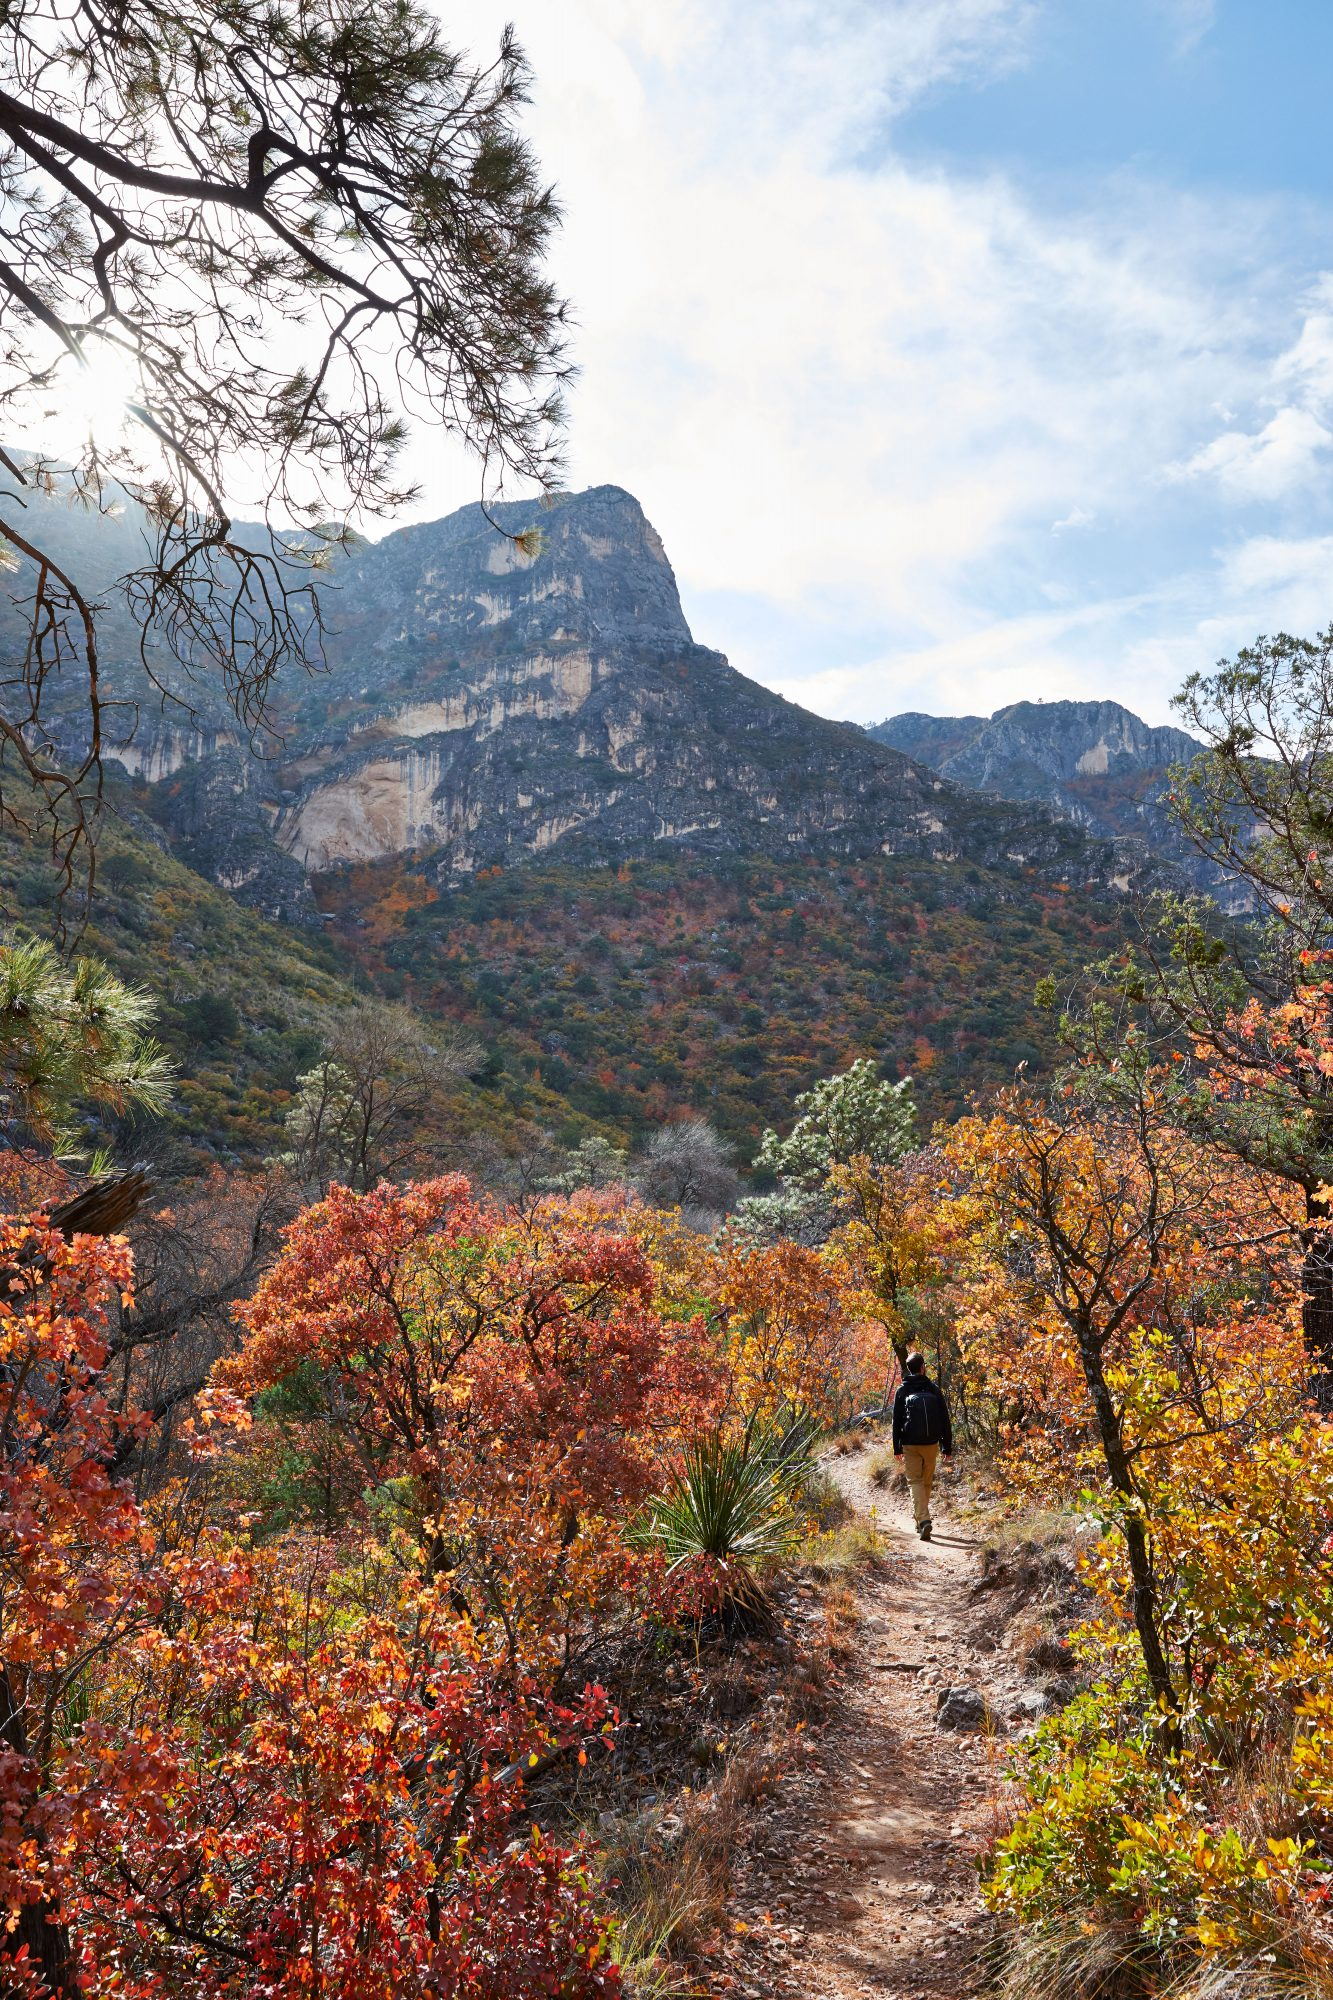 McKittrick Canyon in Guadalupe Mountains National Park in West Texas